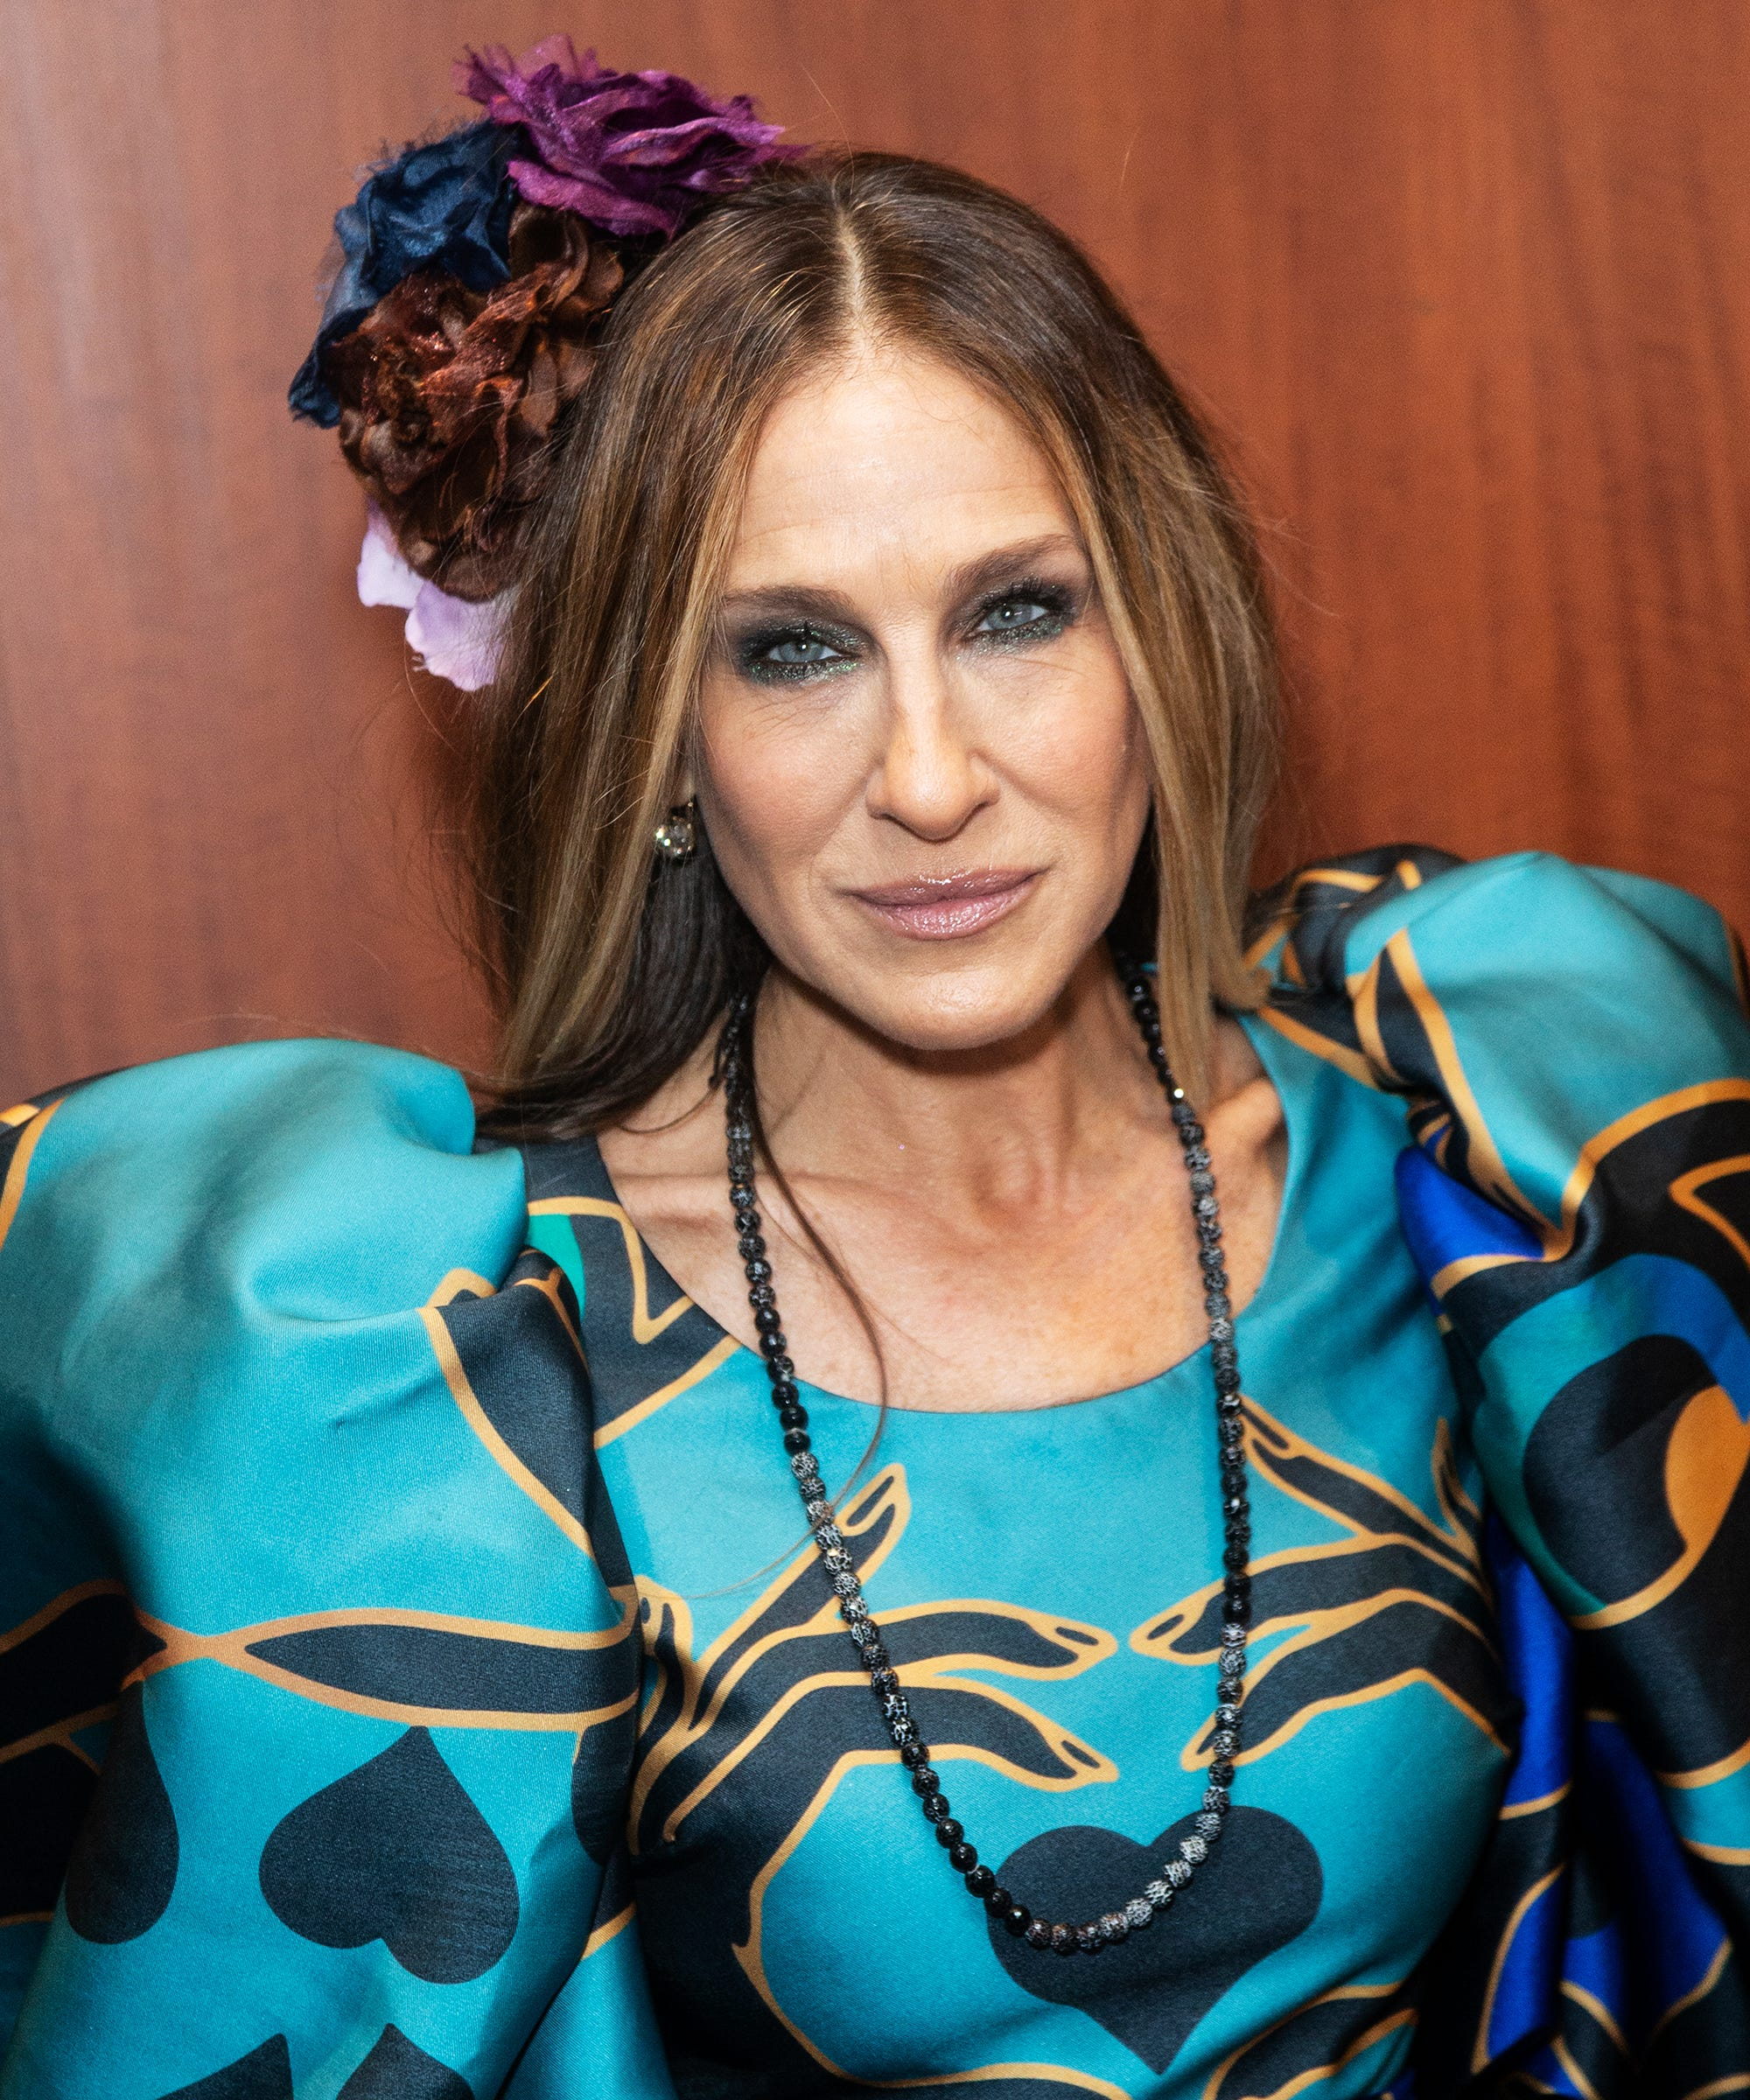 """Sarah Jessica Parker Publicly Slams Tabloid For Repeatedly Publishing """"Untrue, Disgraceful Nonsense"""""""